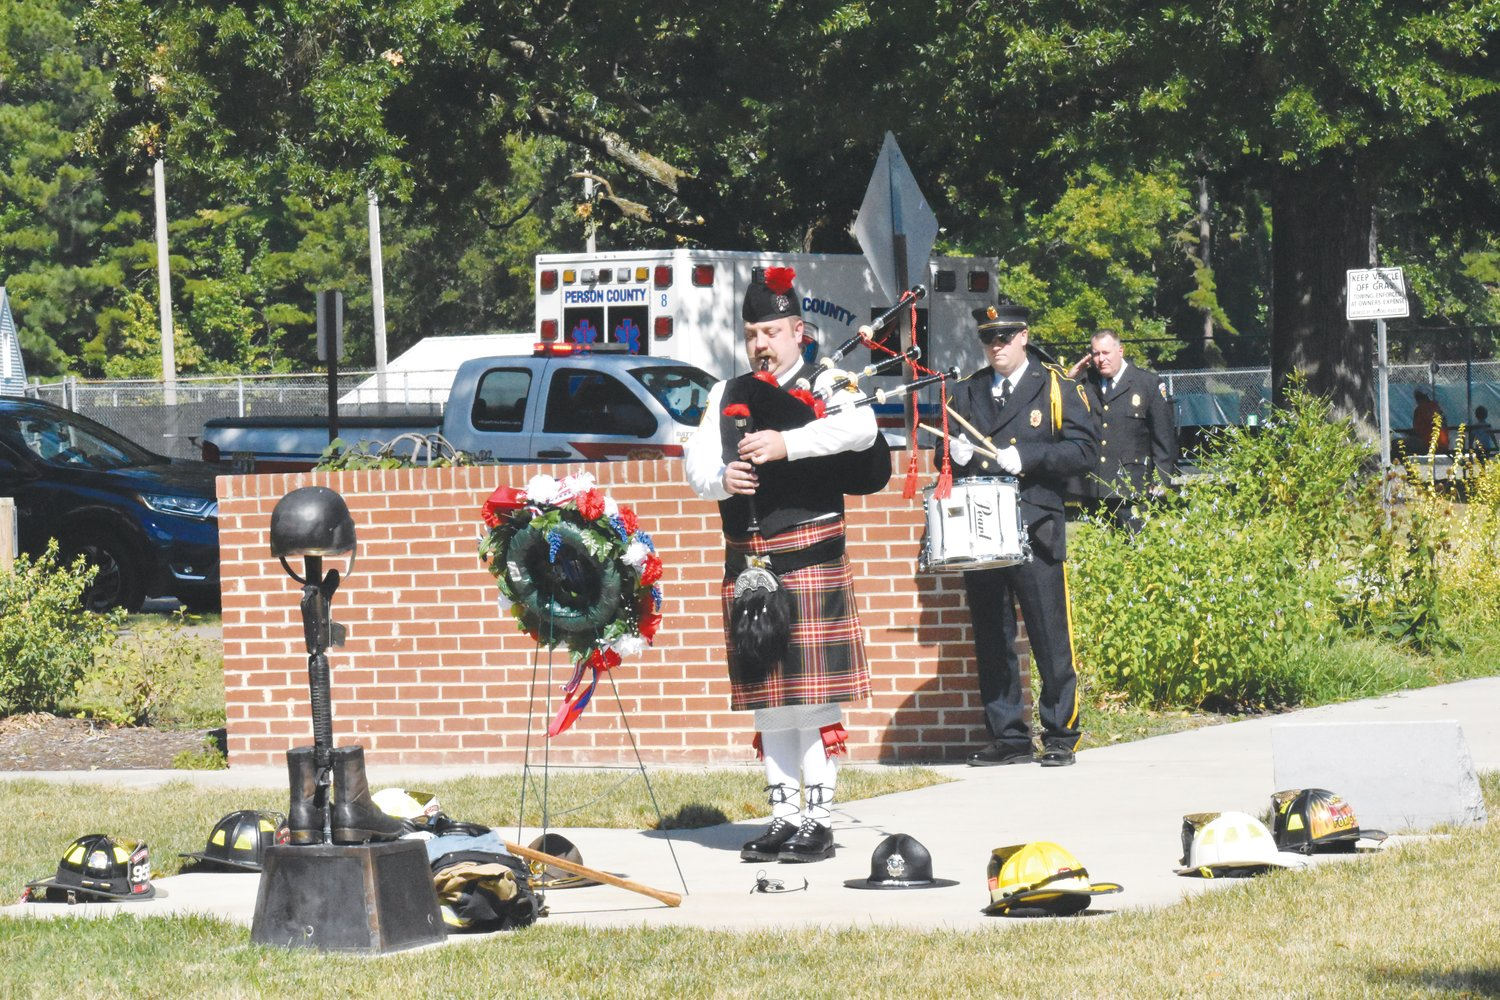 Roxboro Fire Department's Robert Miller plays the bagpipes at the close of Saturday's Patriots Day observance. Miller was escorted into the park by firefighter and snare drummer Blake Whitt.